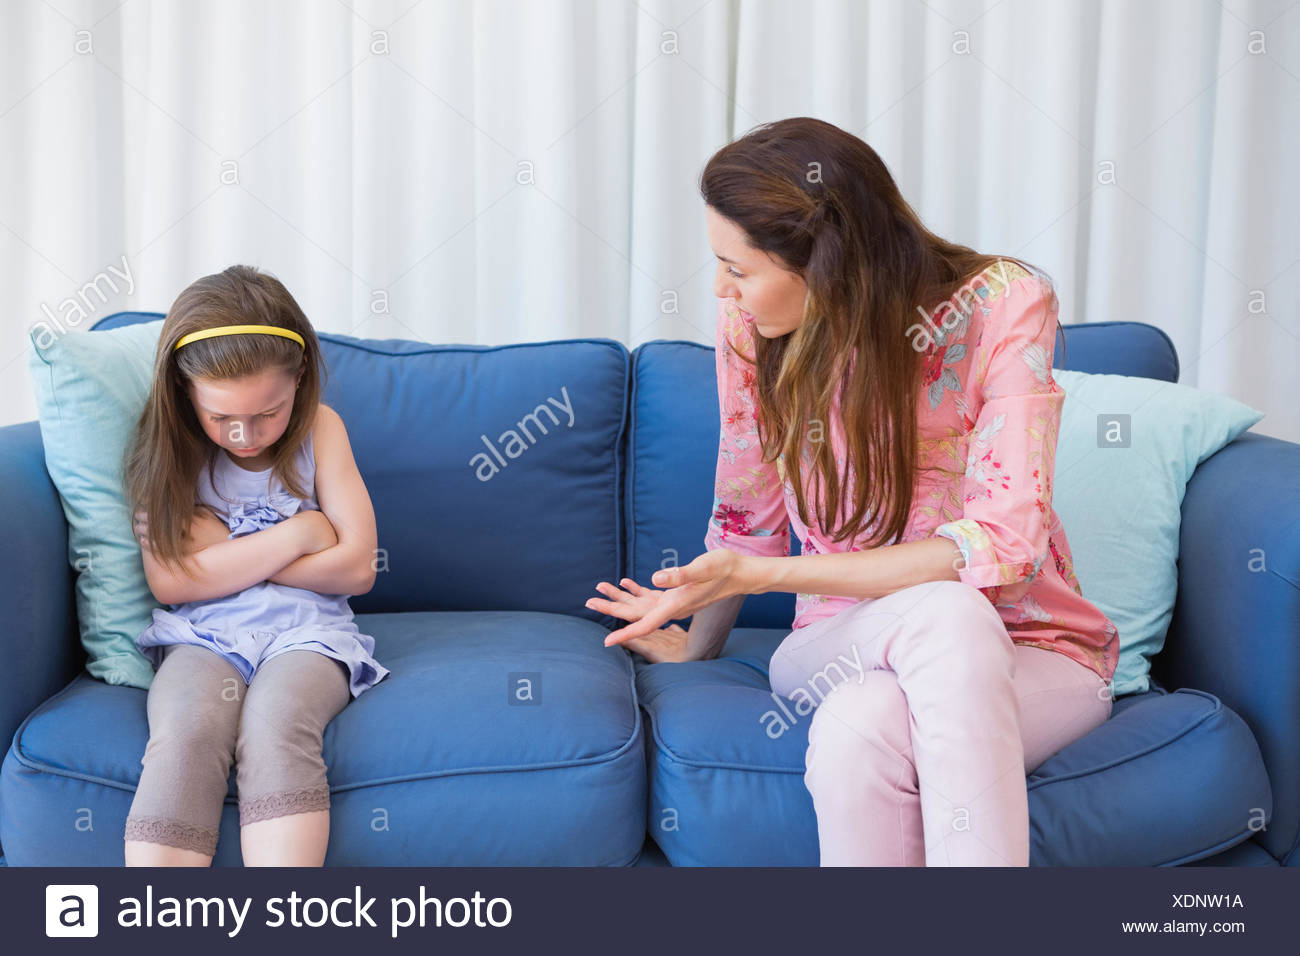 Mother scolding her naughty daughter Stock Photo